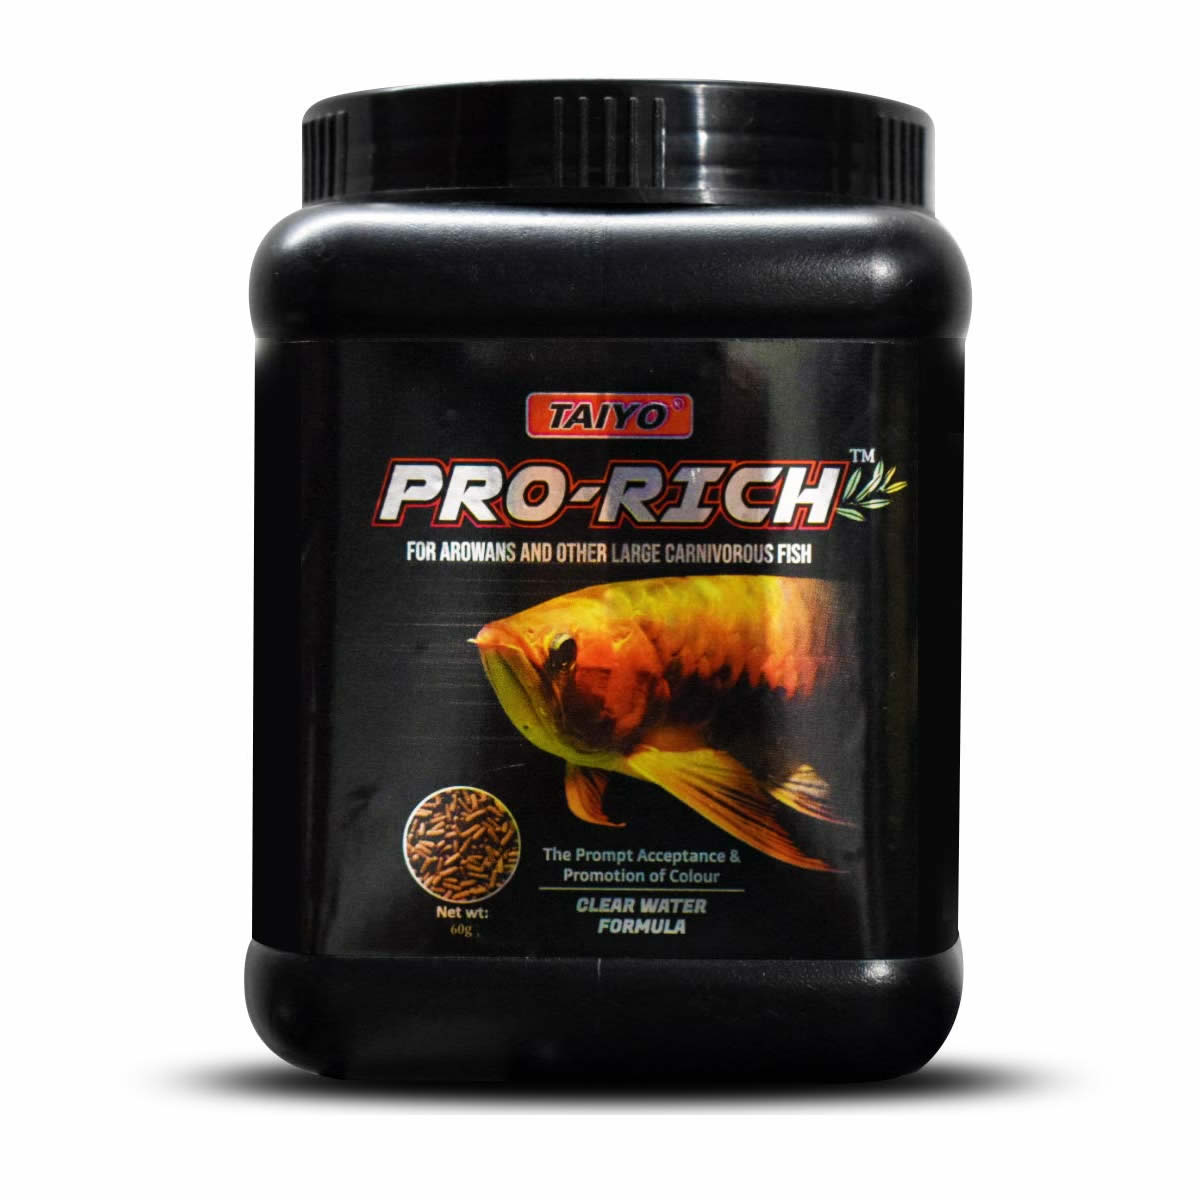 Taiyo Pro Rich for Arowana and Other Large Carnivorous Fish 280g